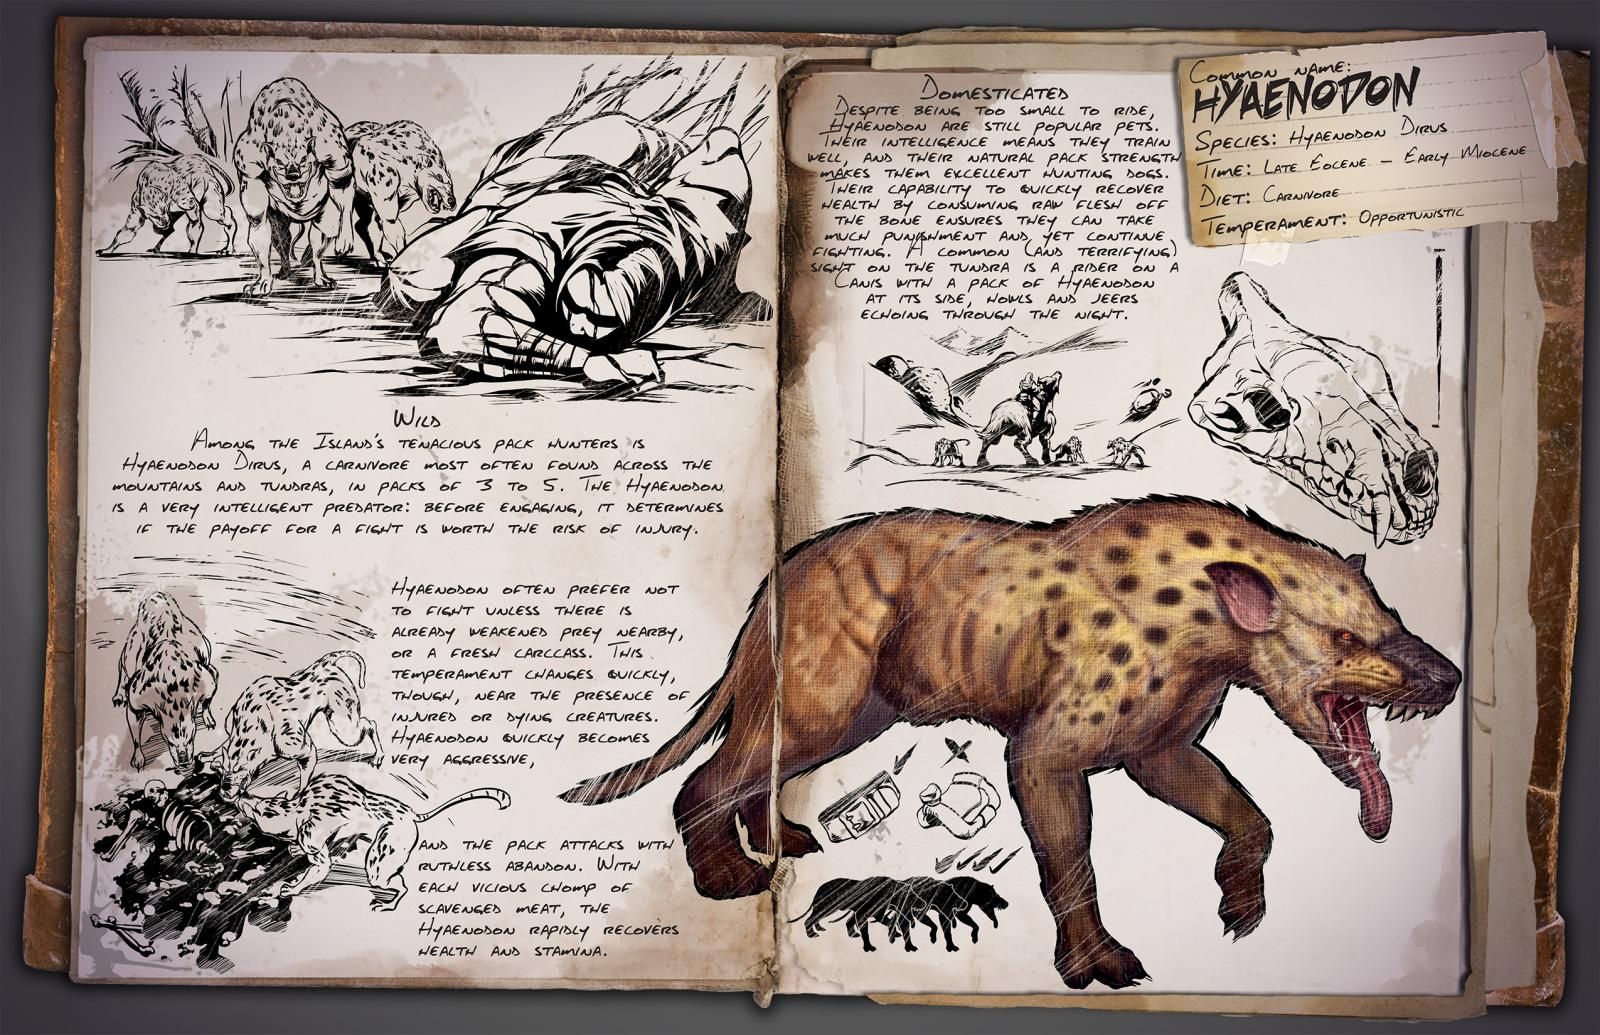 Ark survival evolved patch 258 brings new dinos toilets ark hyaenodon malvernweather Choice Image